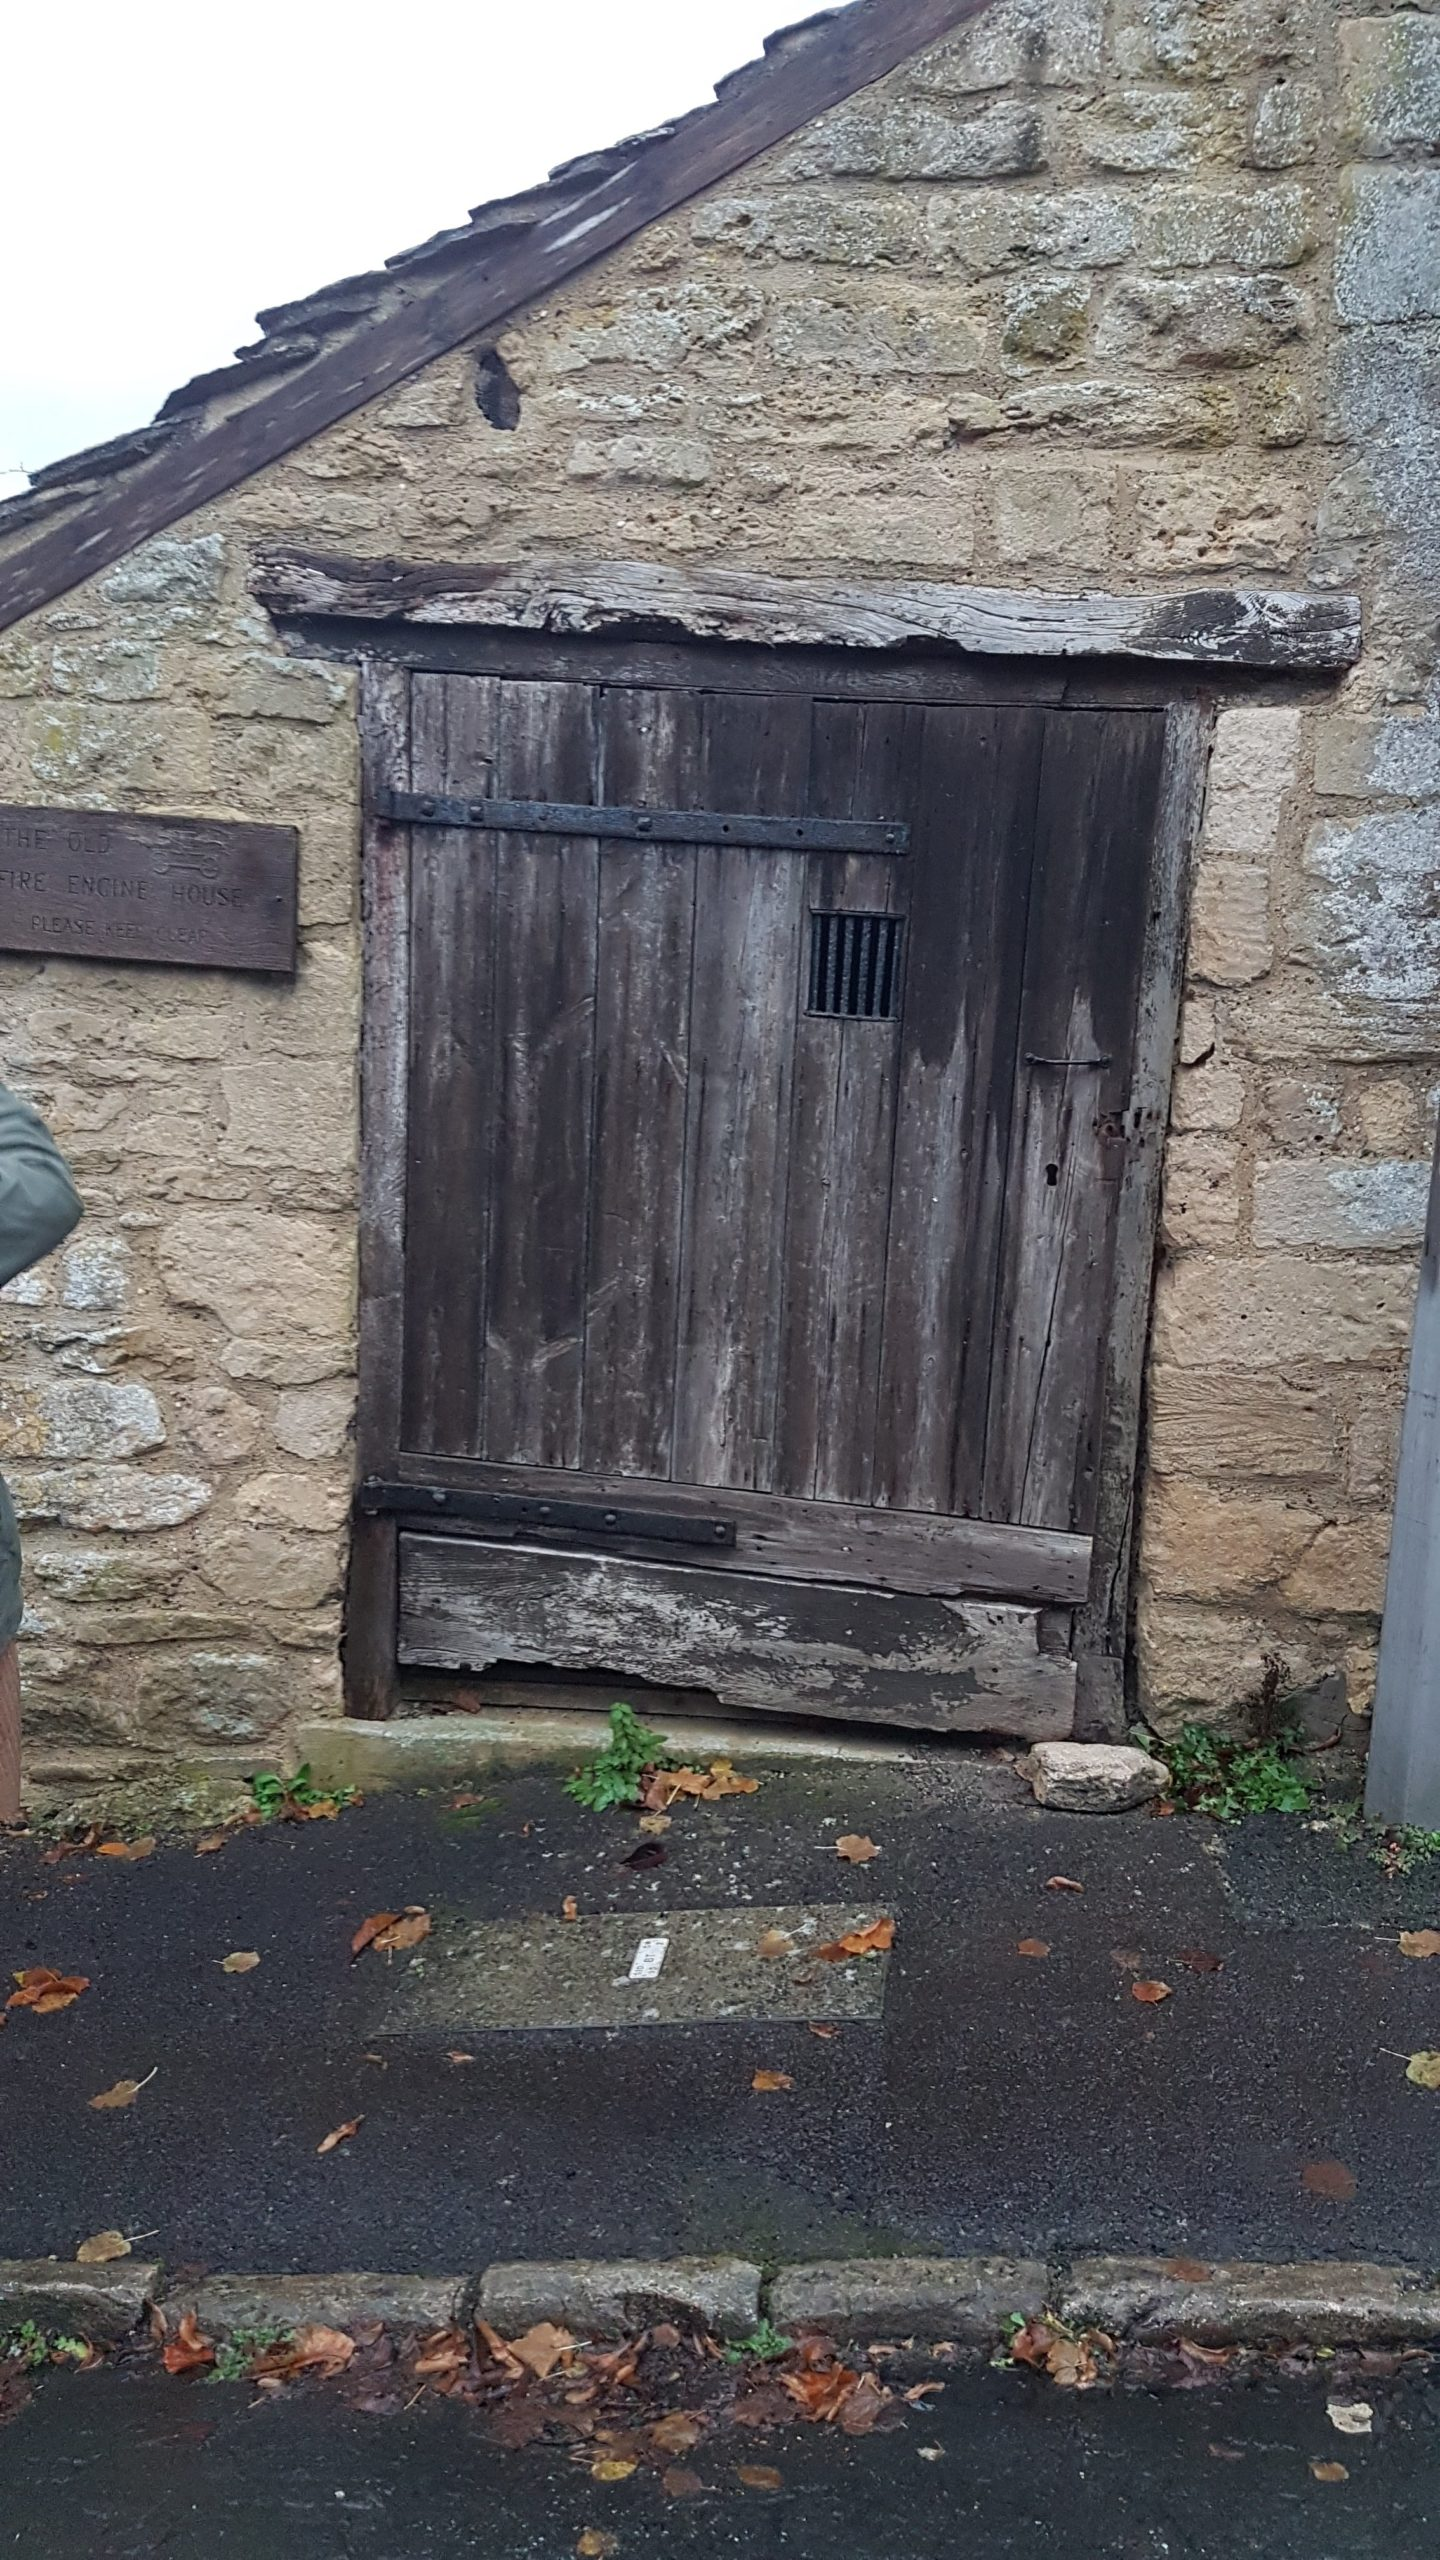 Wooden door, with strap hinges and a window covered with an iron grille